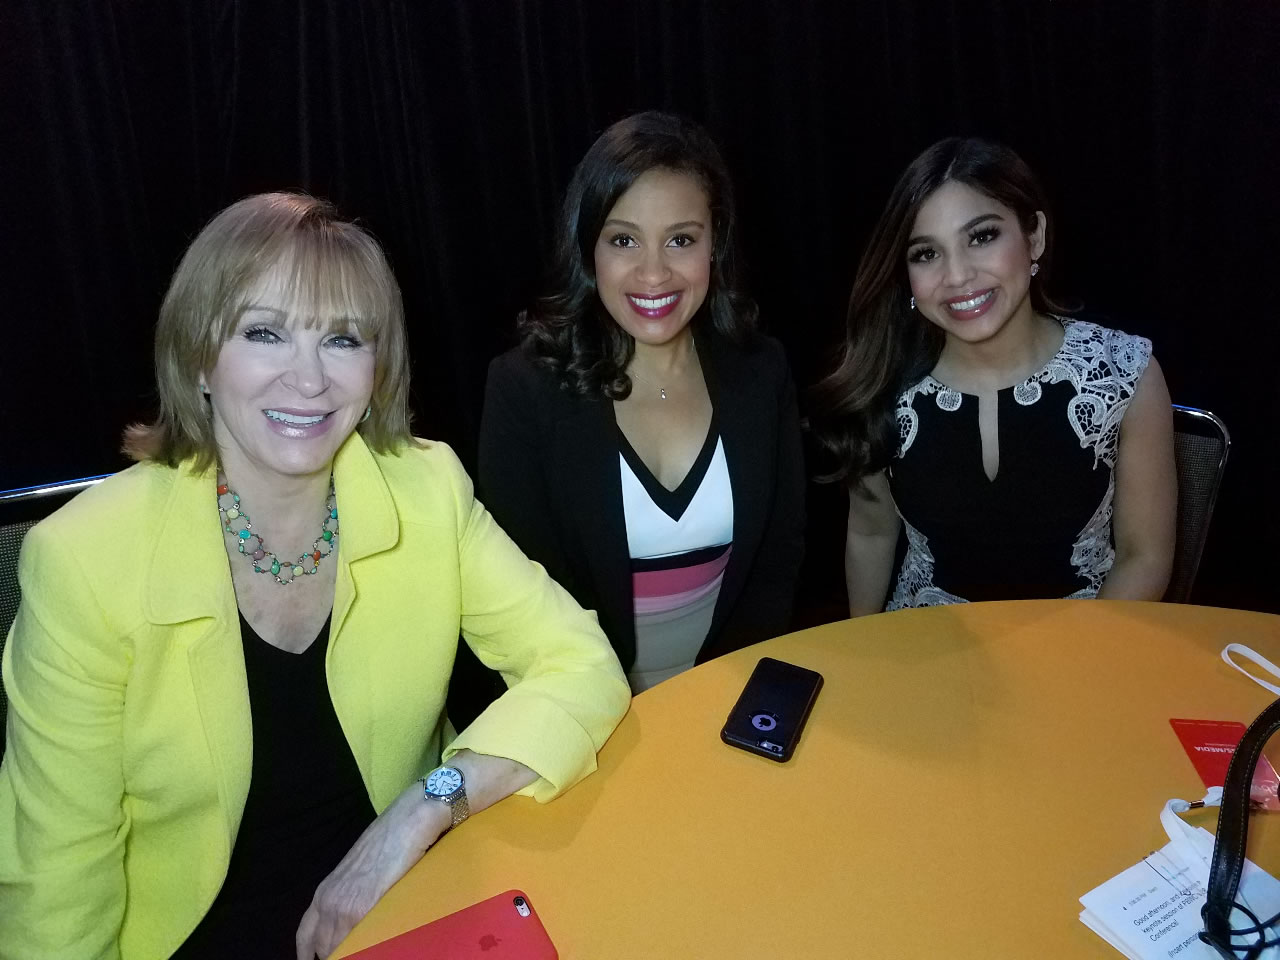 <div class='meta'><div class='origin-logo' data-origin='none'></div><span class='caption-text' data-credit='KGO-TV'>ABC7's Cheryl Jennings, Ama Dates and Ntashe Zouves at the Professional BusinessWomen of California Conference in San Francisco on March, 28, 2017.</span></div>